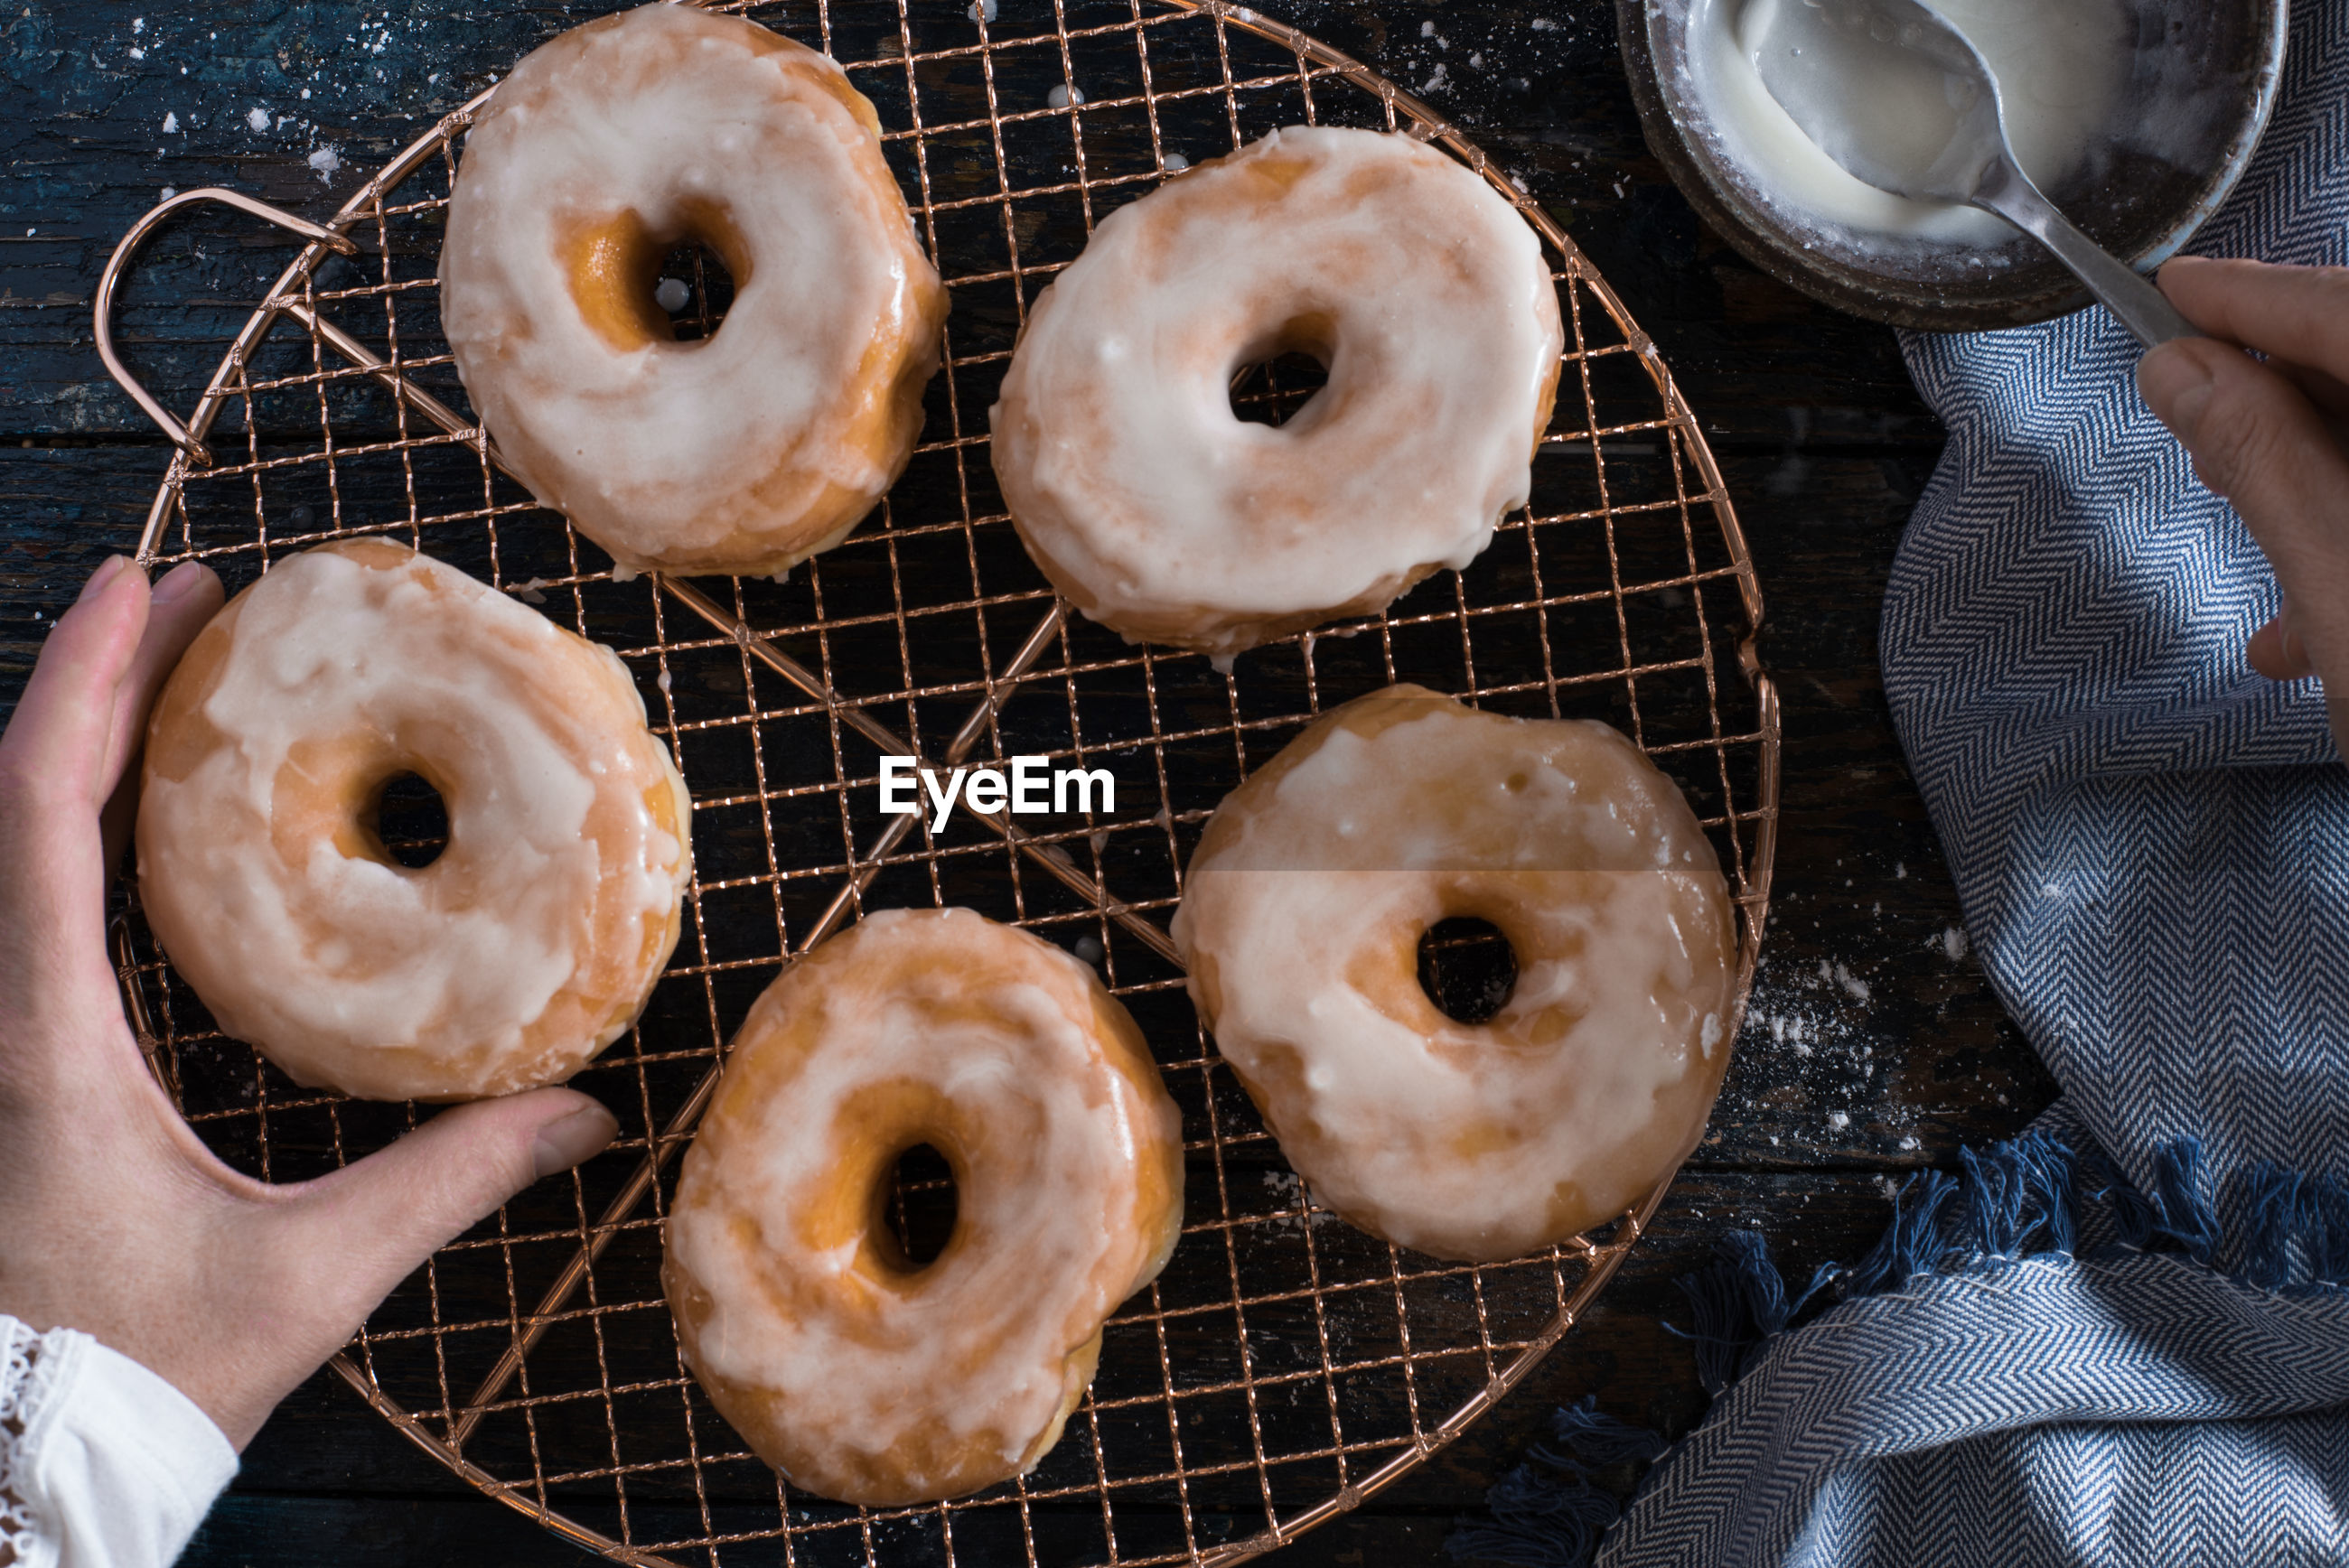 Cropped hands preparing donut on table